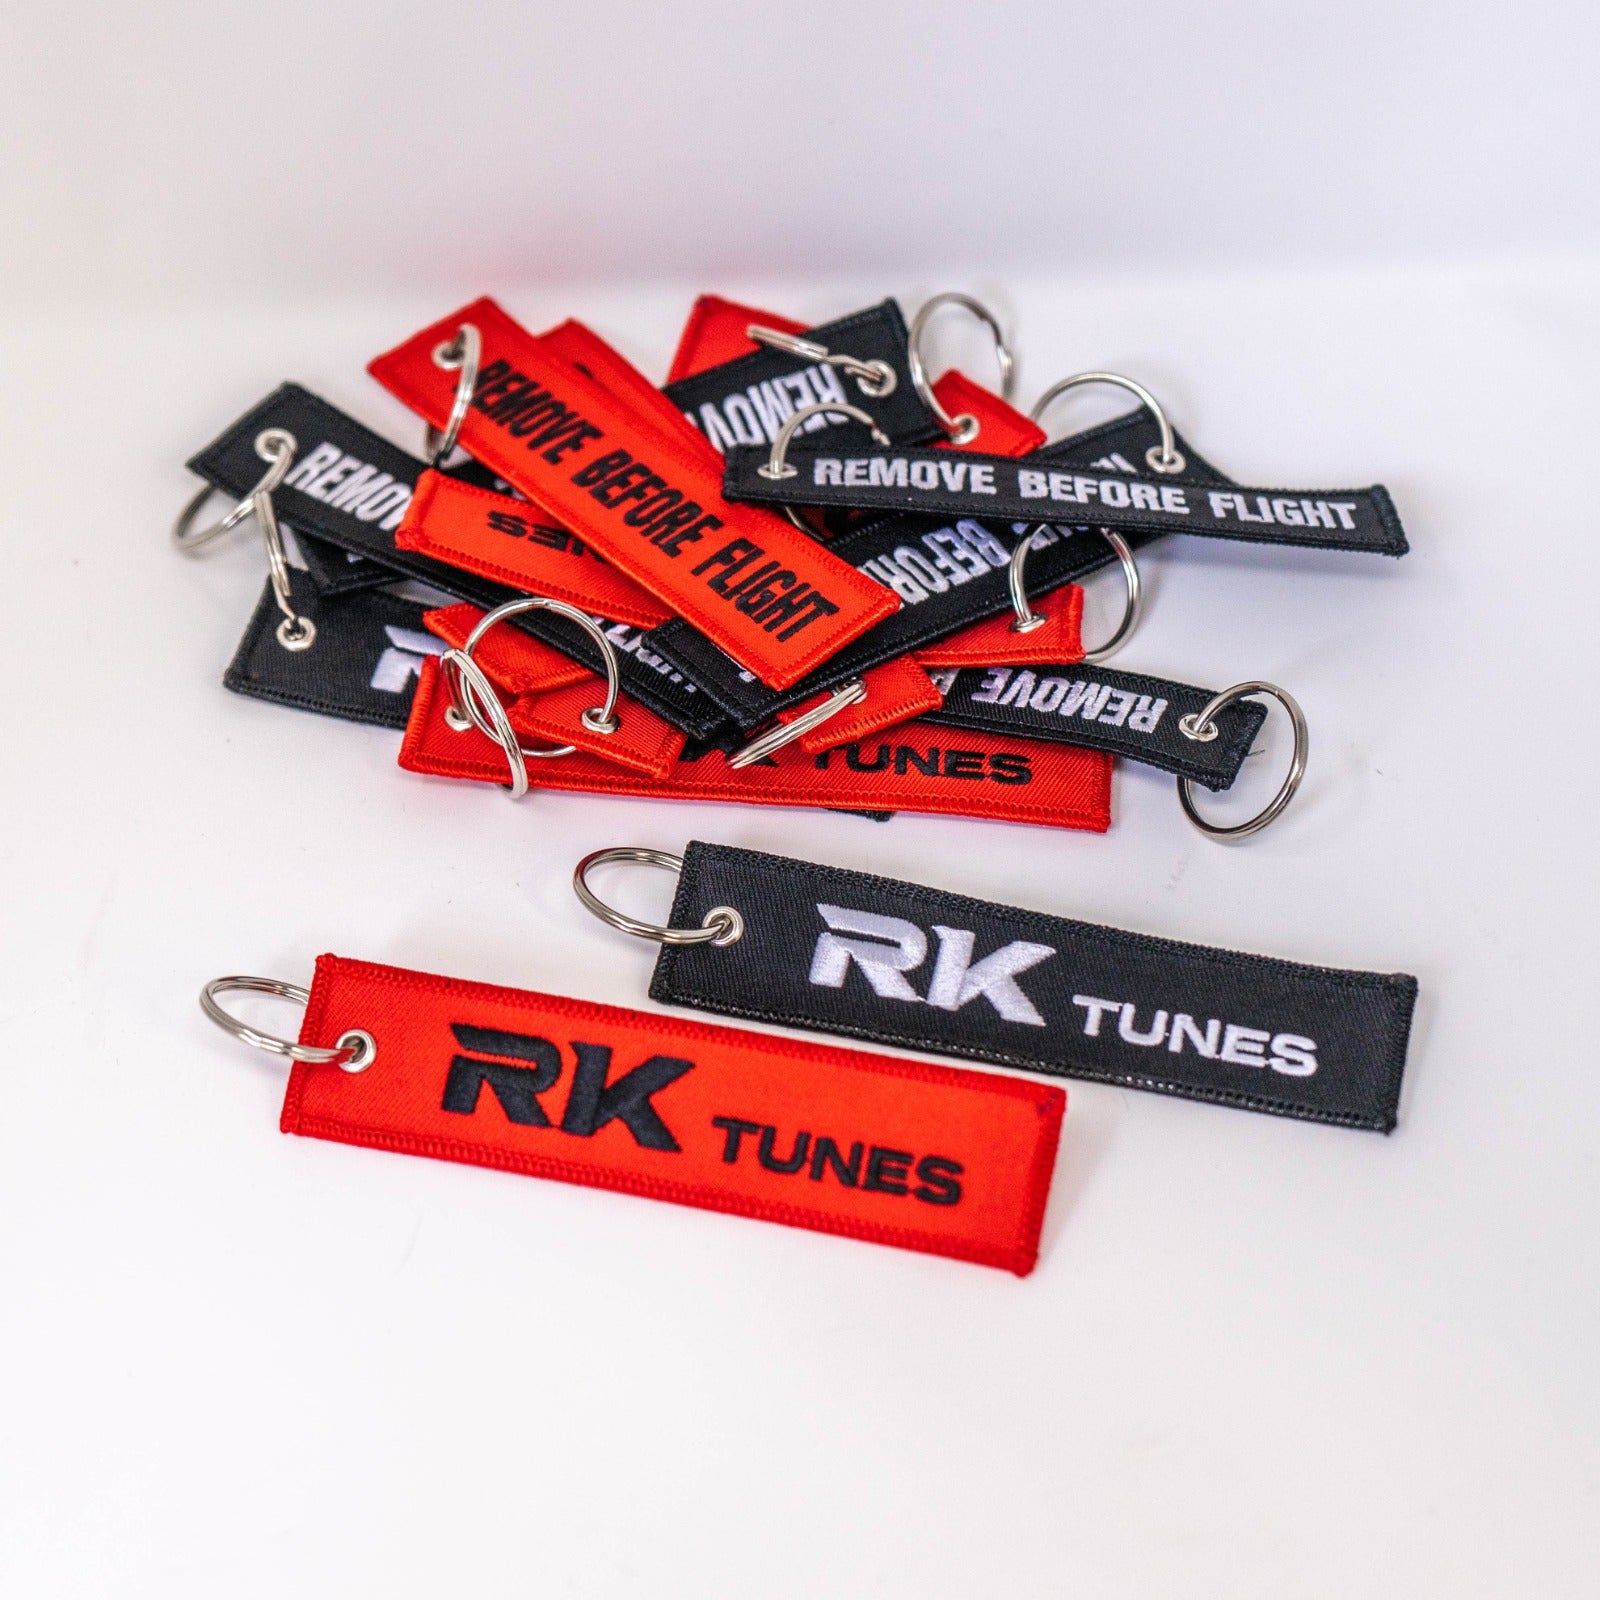 RK-Tunes Remove Before Flight Keychain